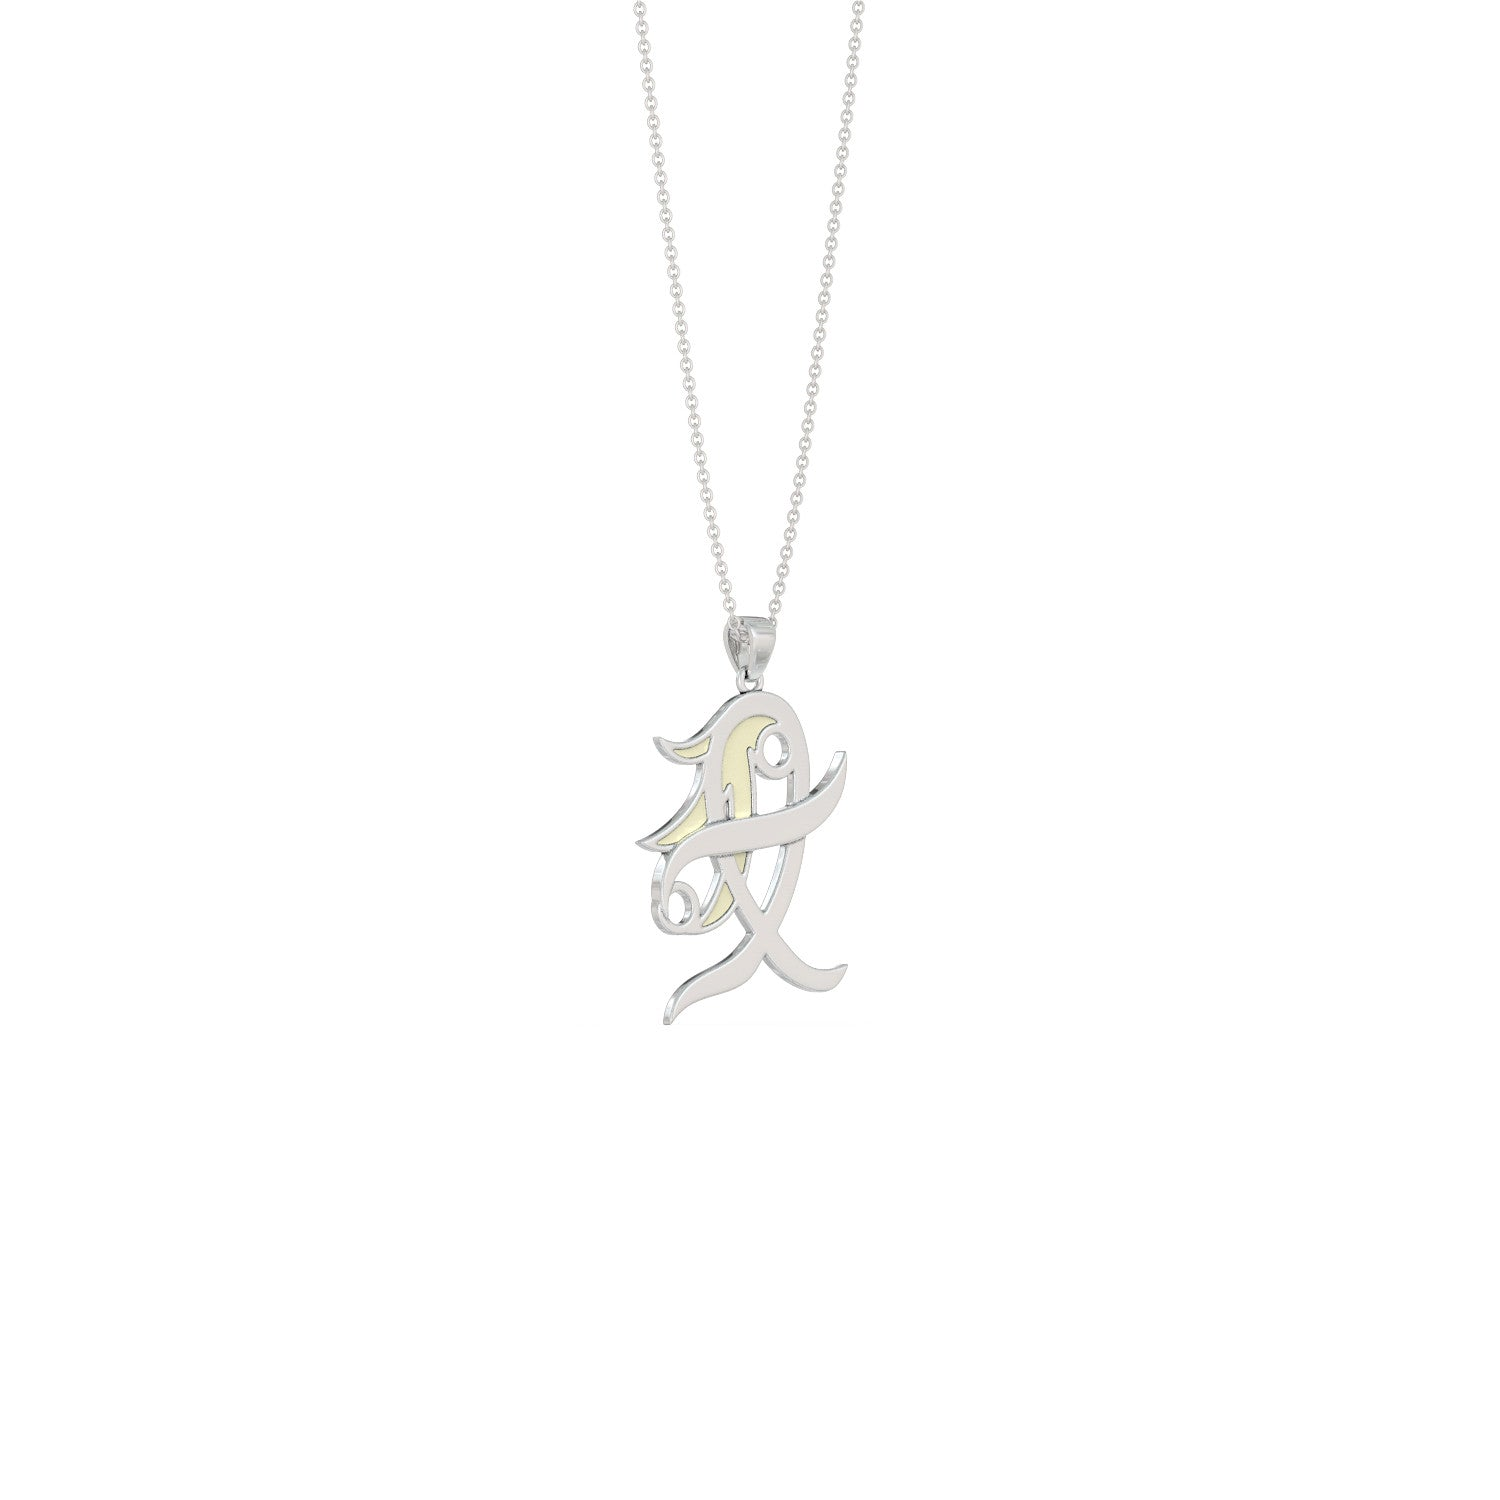 virgo jewellery zodiac pin constellation necklace